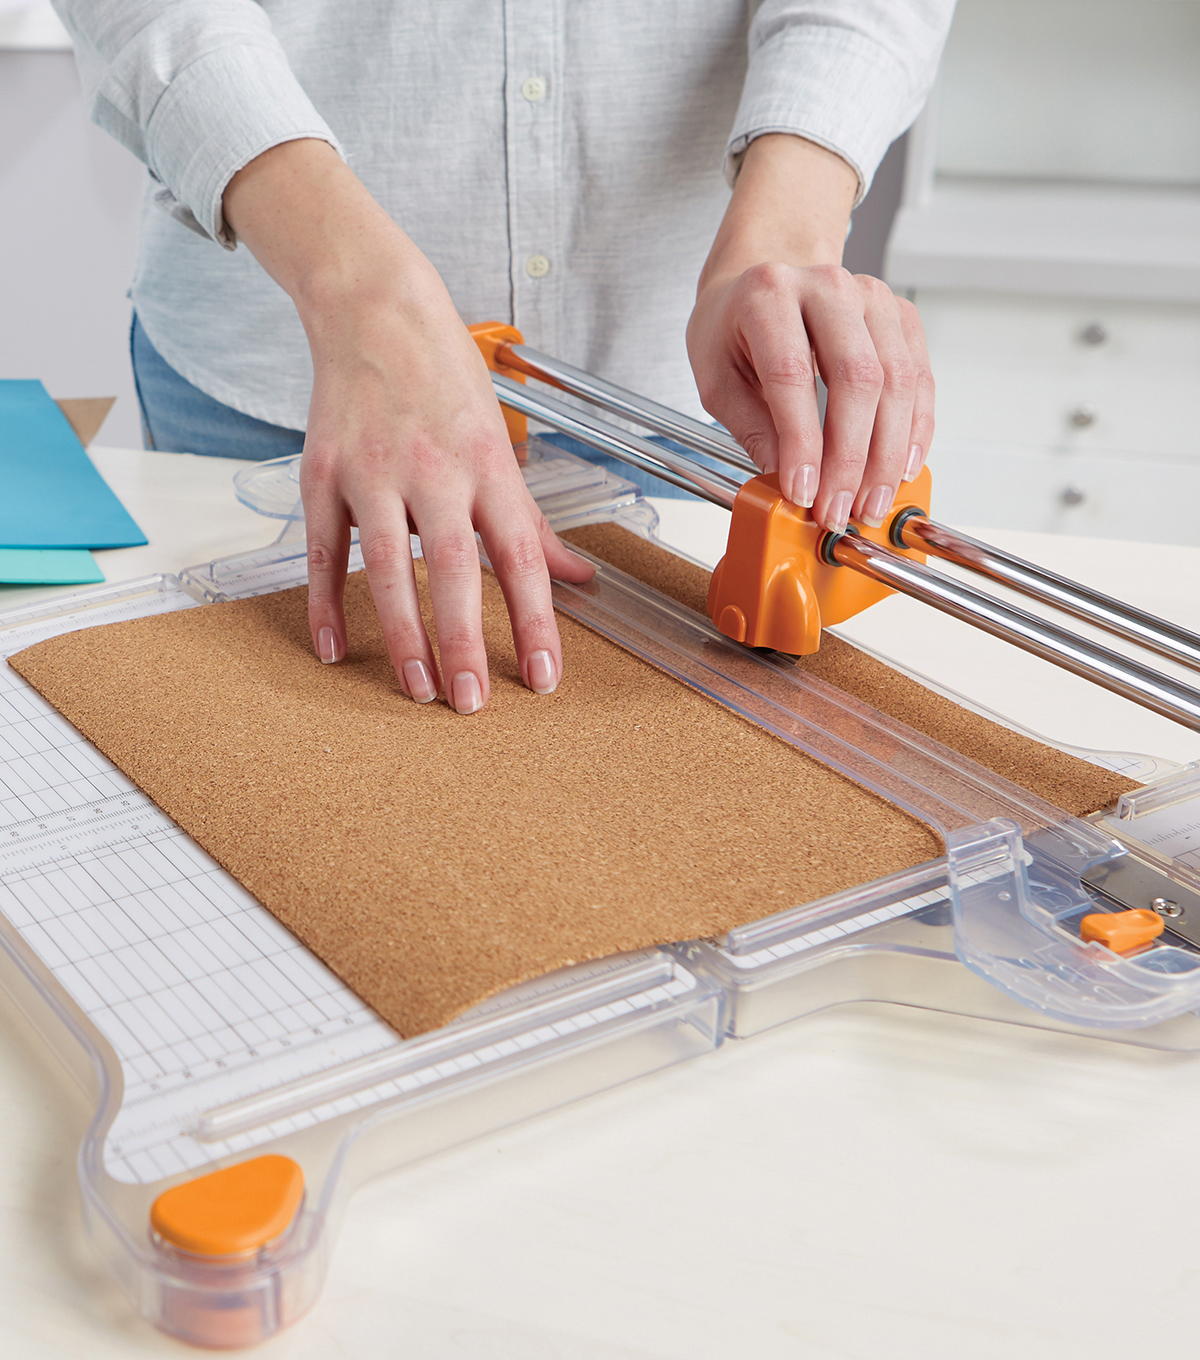 Fiskars DIY ProCision Trimmer Tool